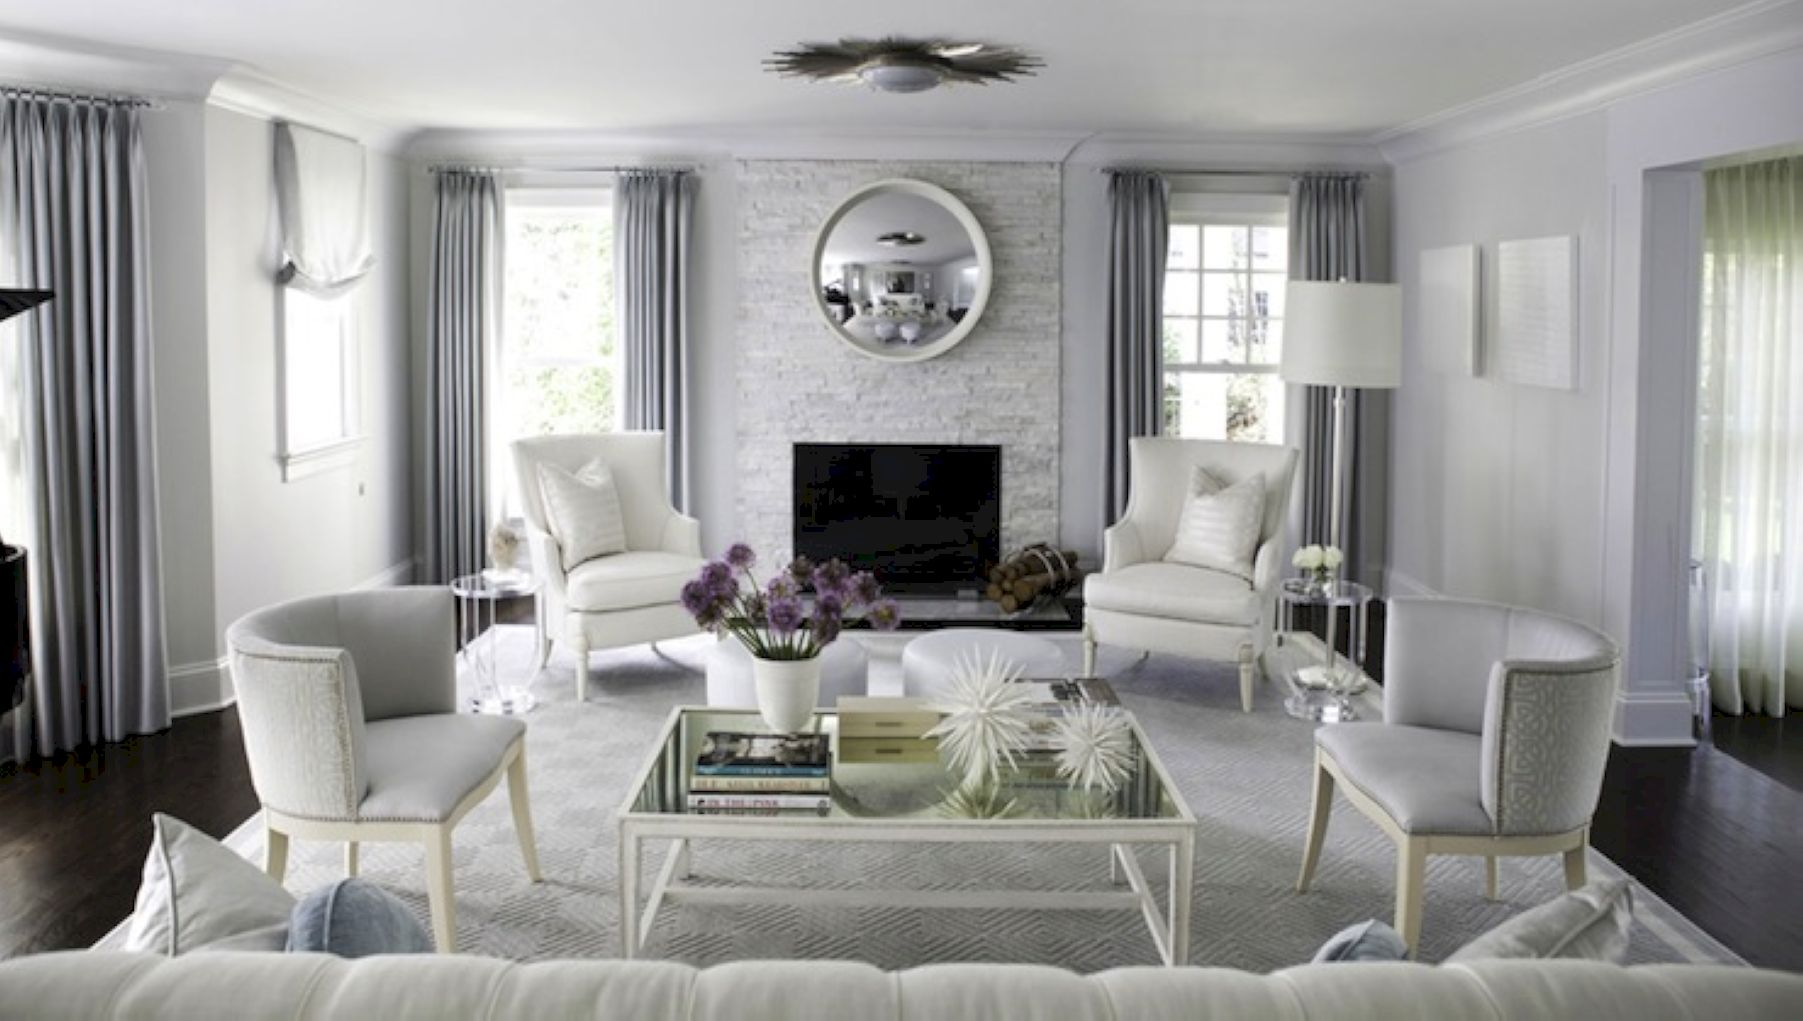 70 Stunning Gray And White Living Room Decor Ideas